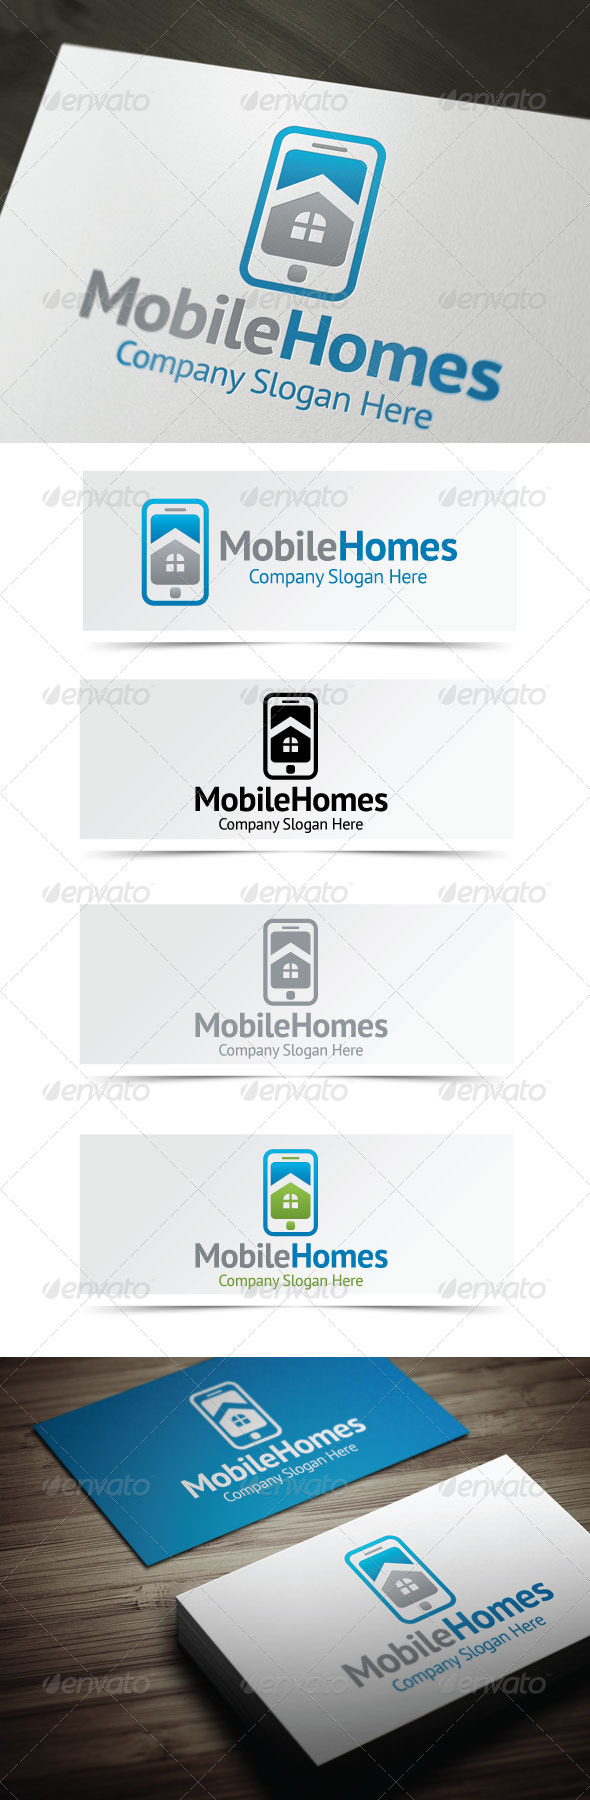 GraphicRiver Mobile Homes 4177549